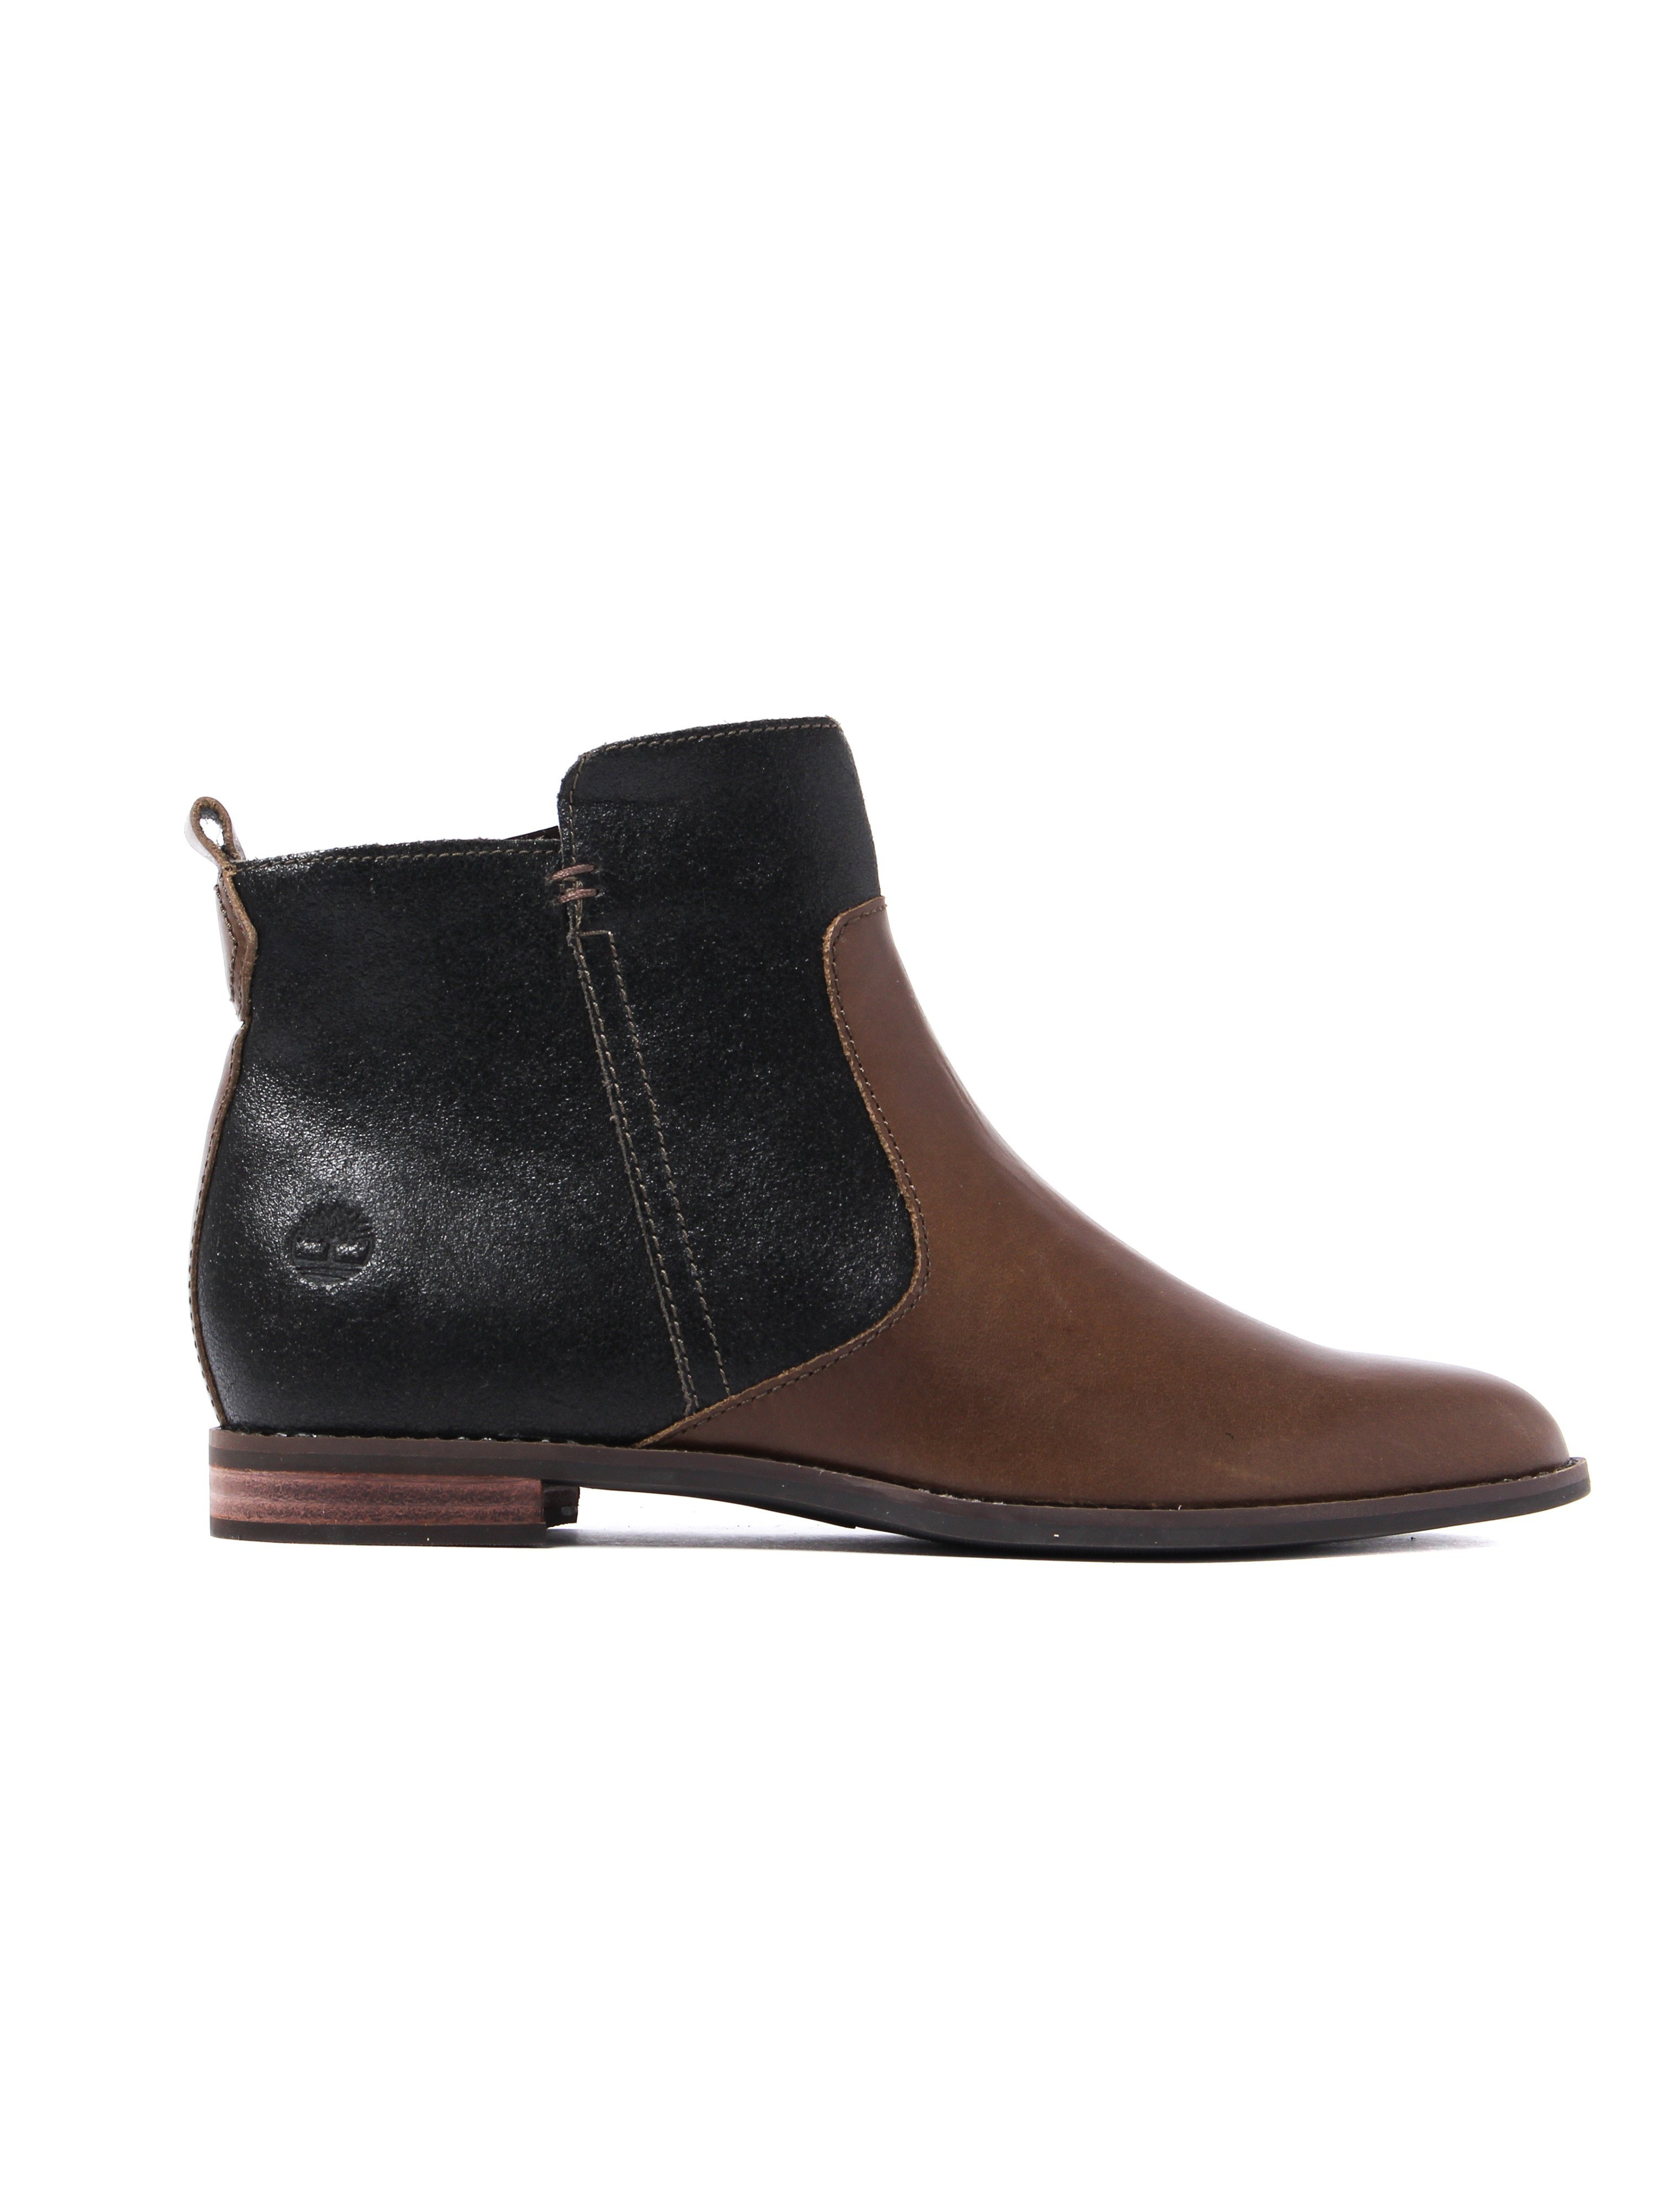 Timberland Women's Preble Ankle Boots - Canteen Leather